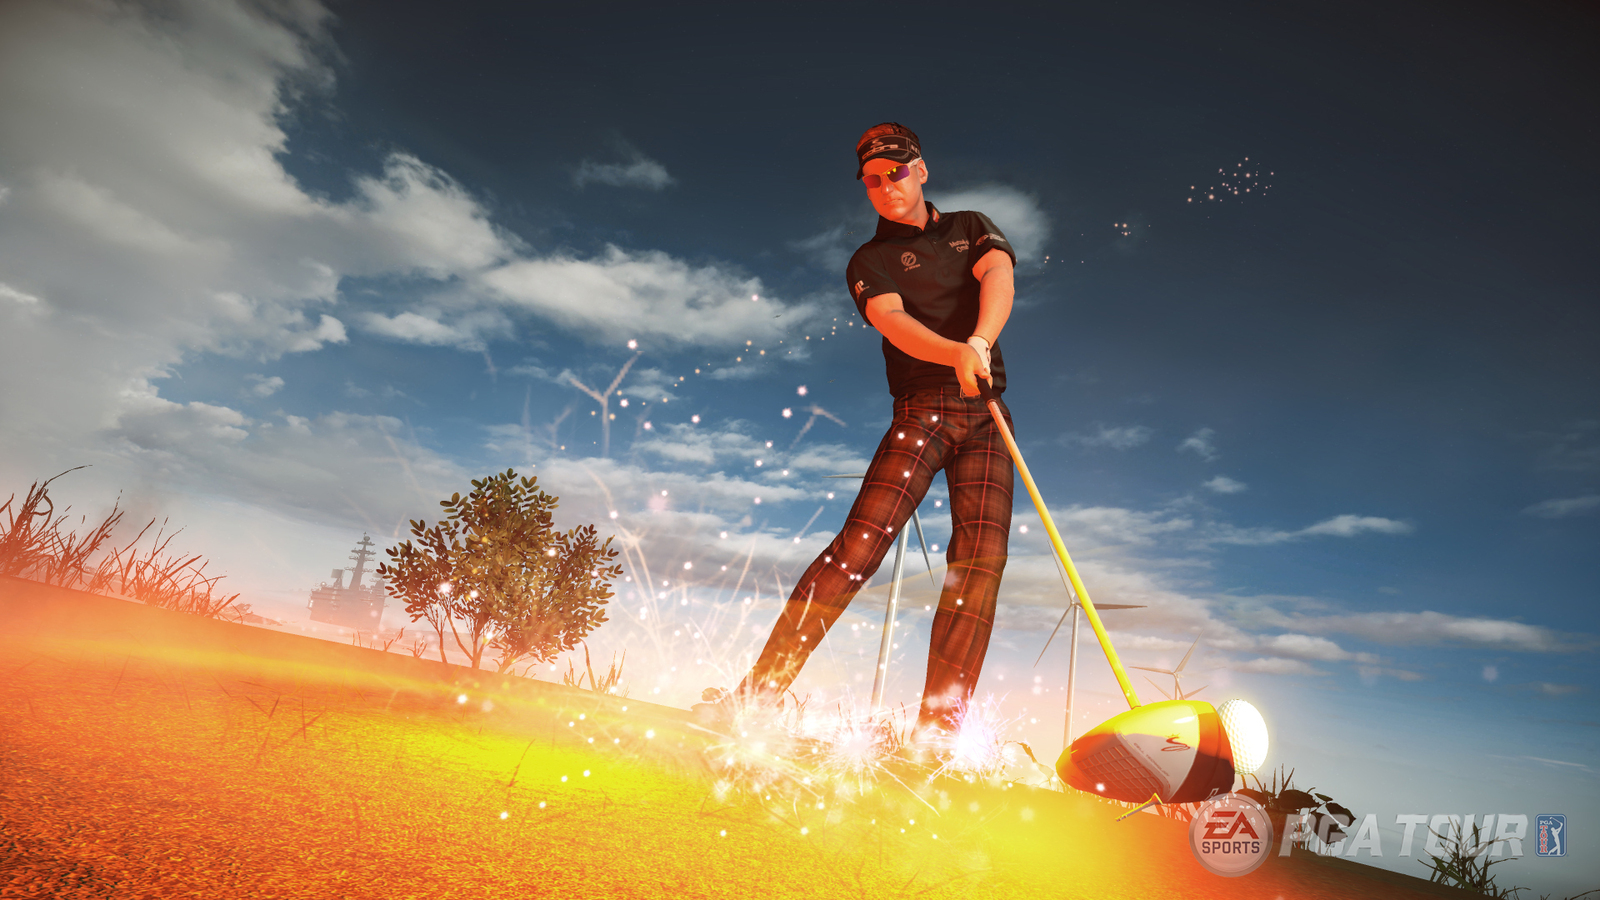 Rory Mcllroy PGA Tour for PS4 image